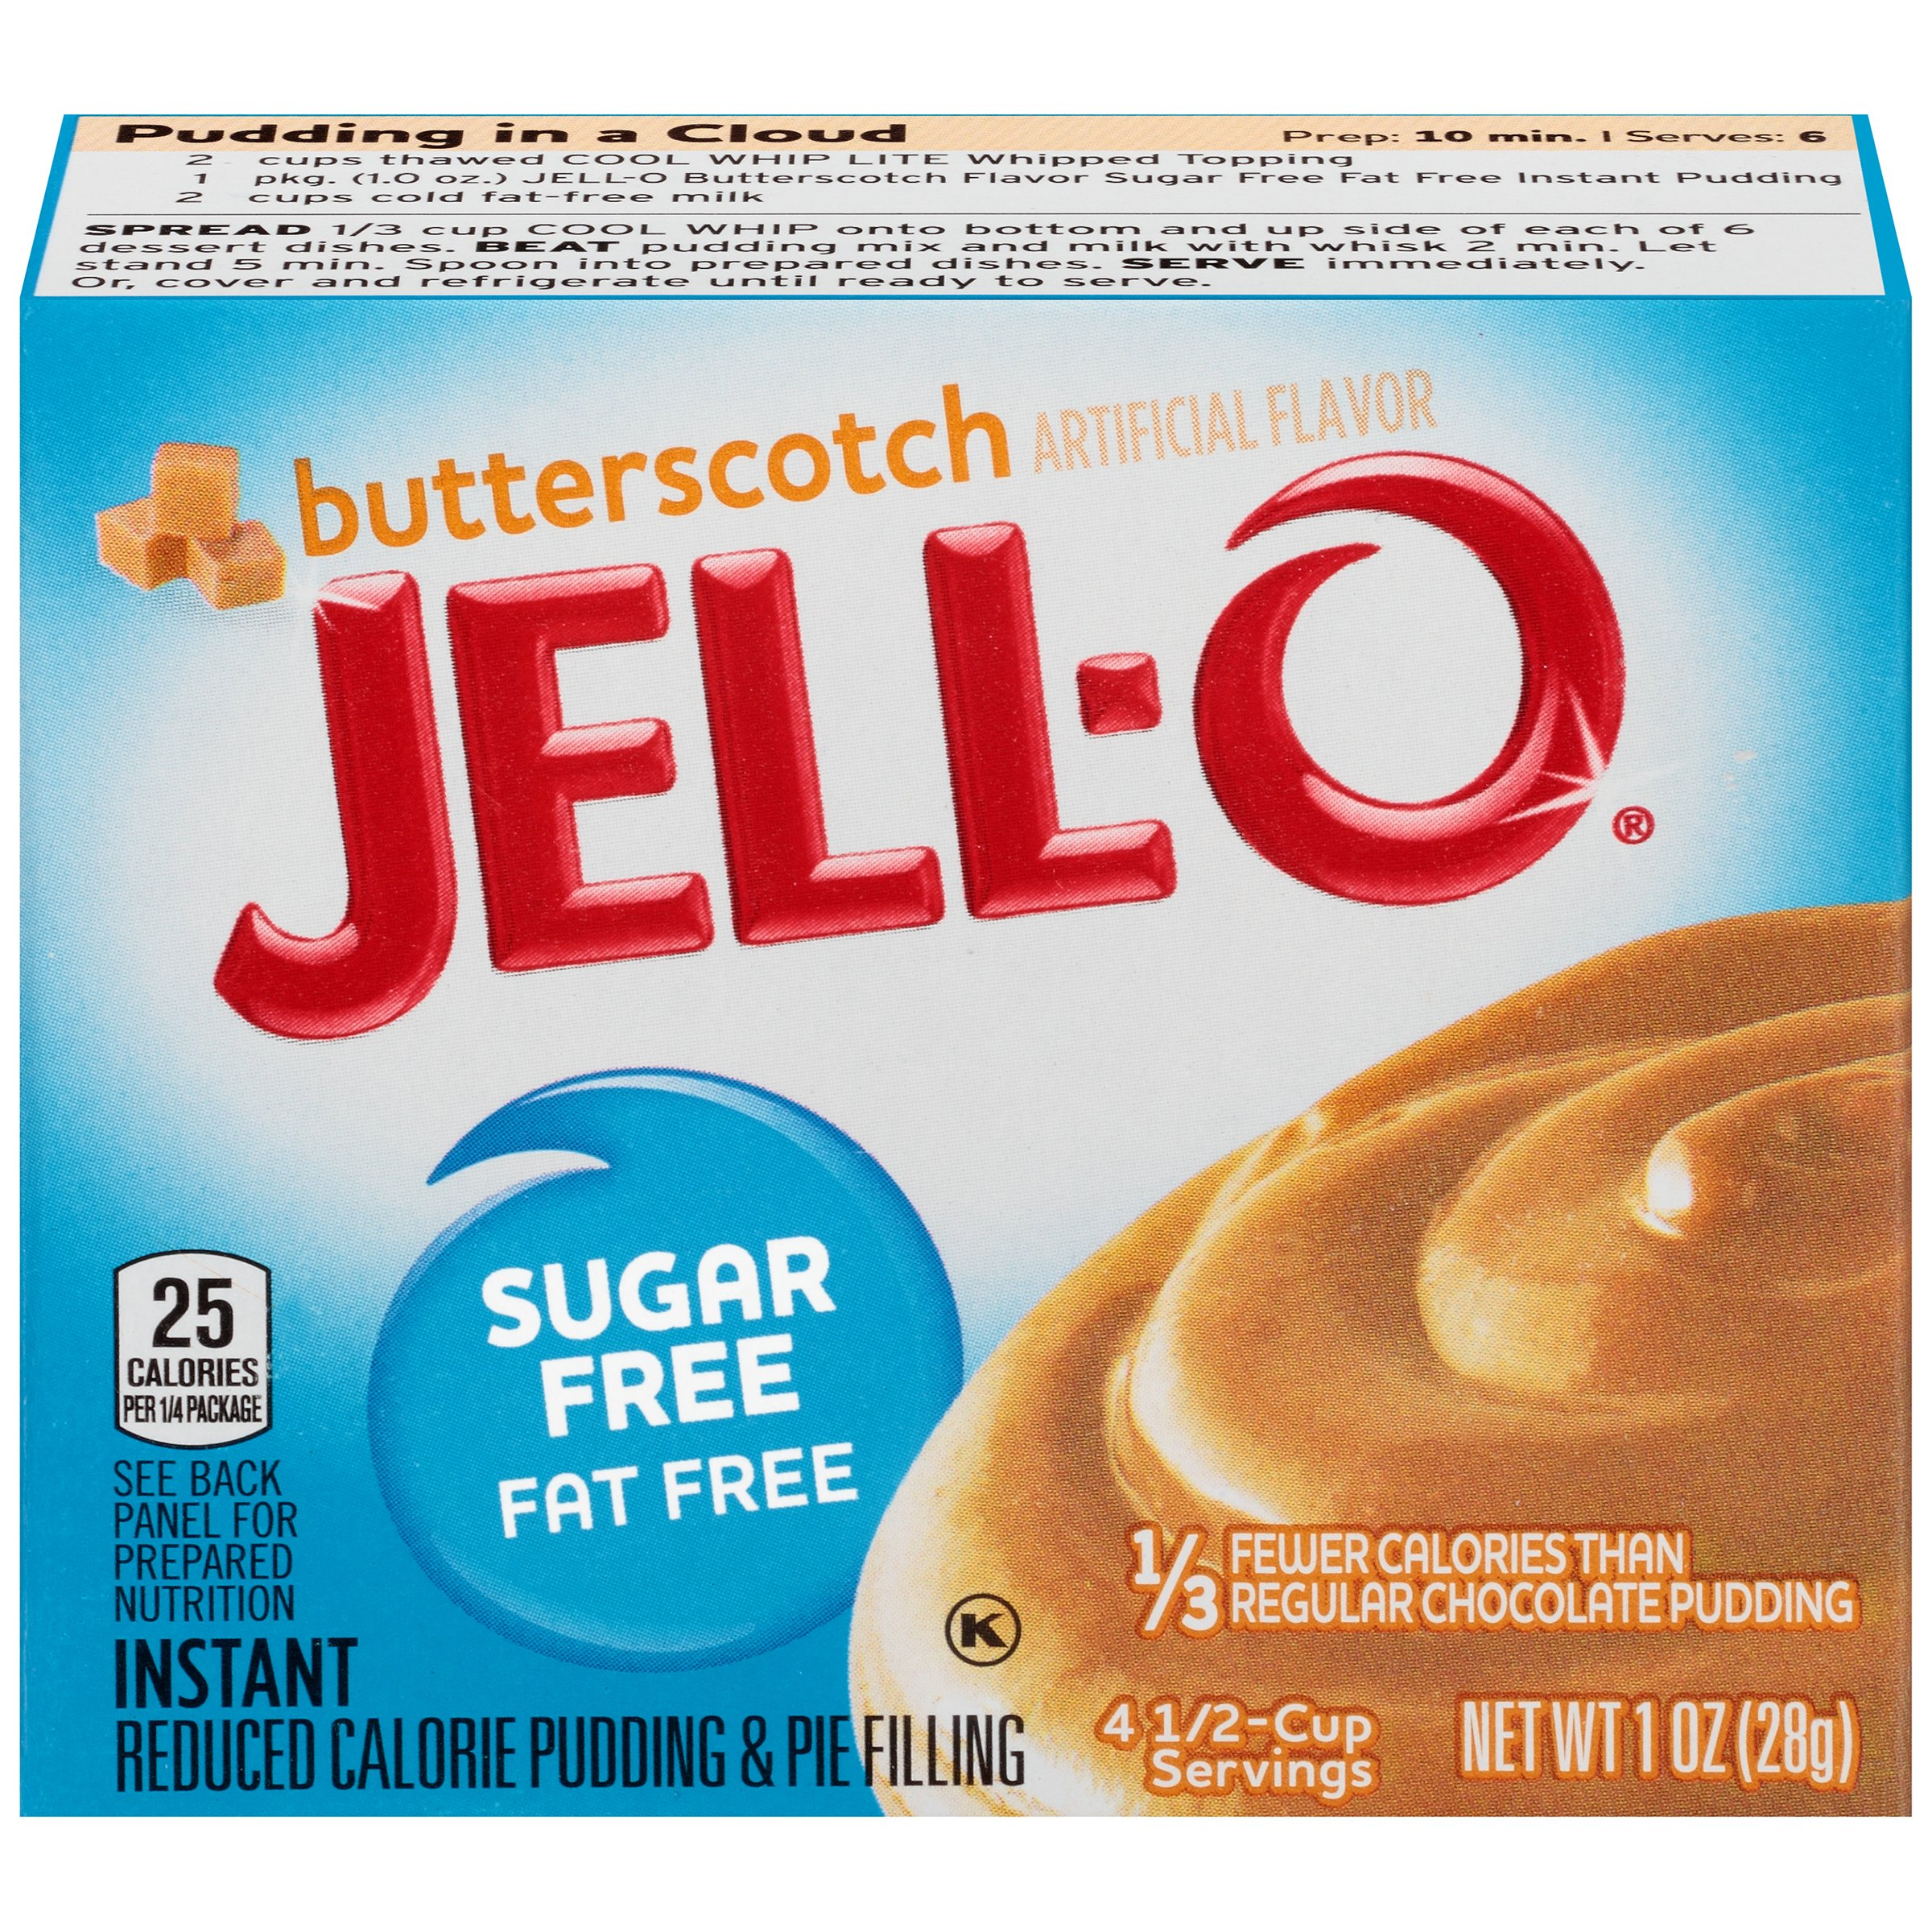 Jell-O Sugar-Free Instant Pudding & Pie Filling, Butterscotch, 1 oz